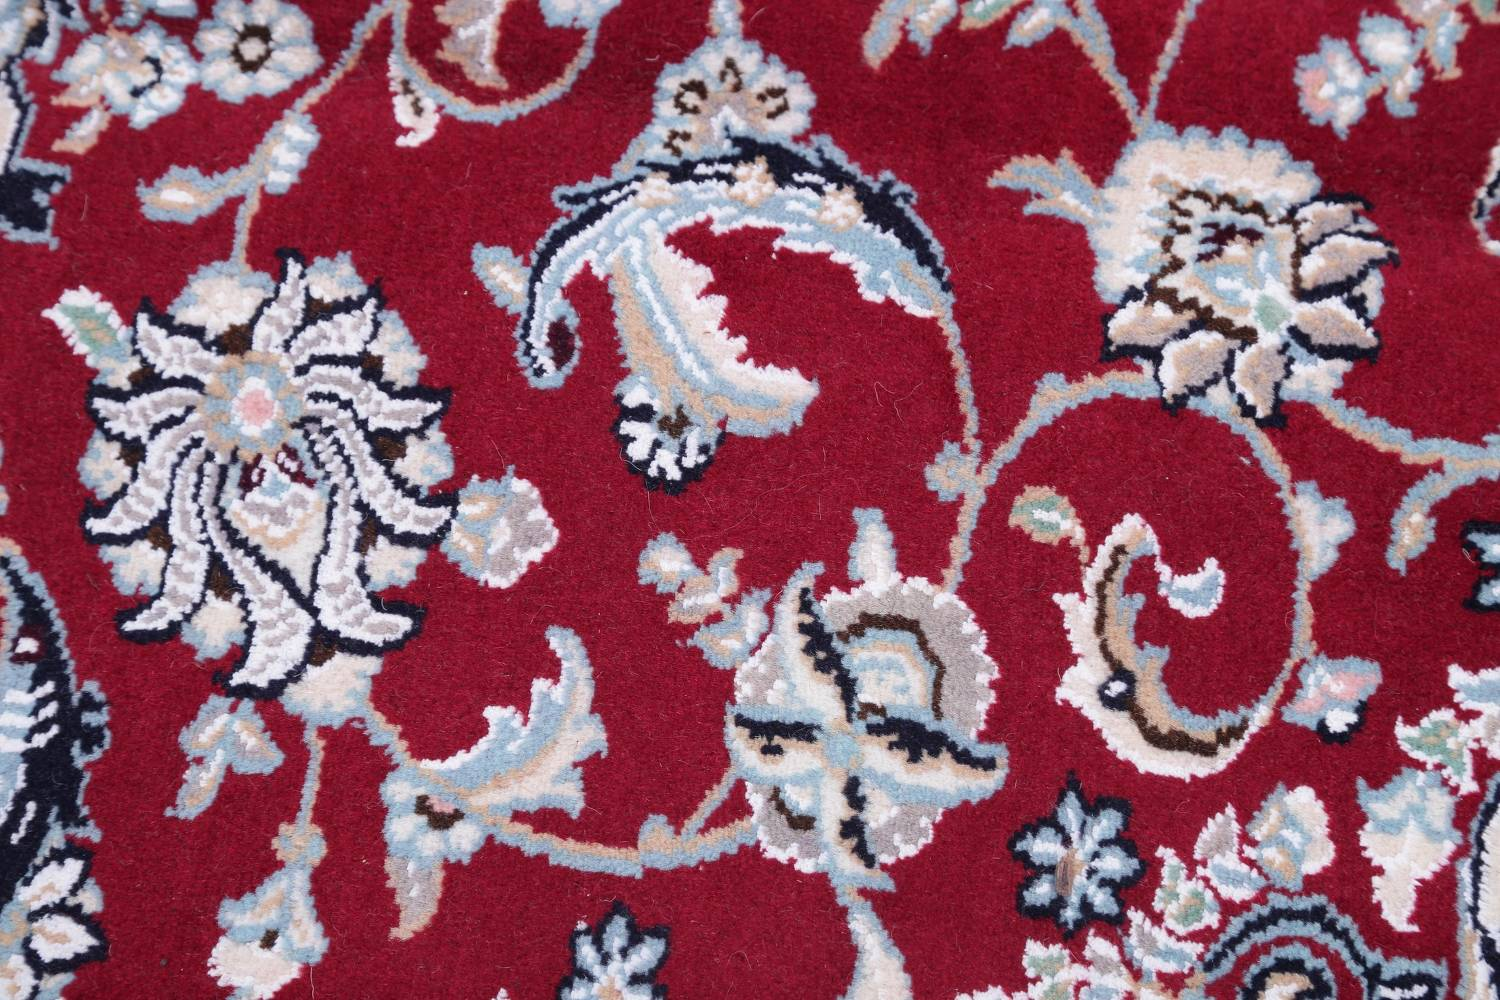 Floral Red Nain Persian Hand-Knotted 5x7 Wool Silk Area Rug image 8